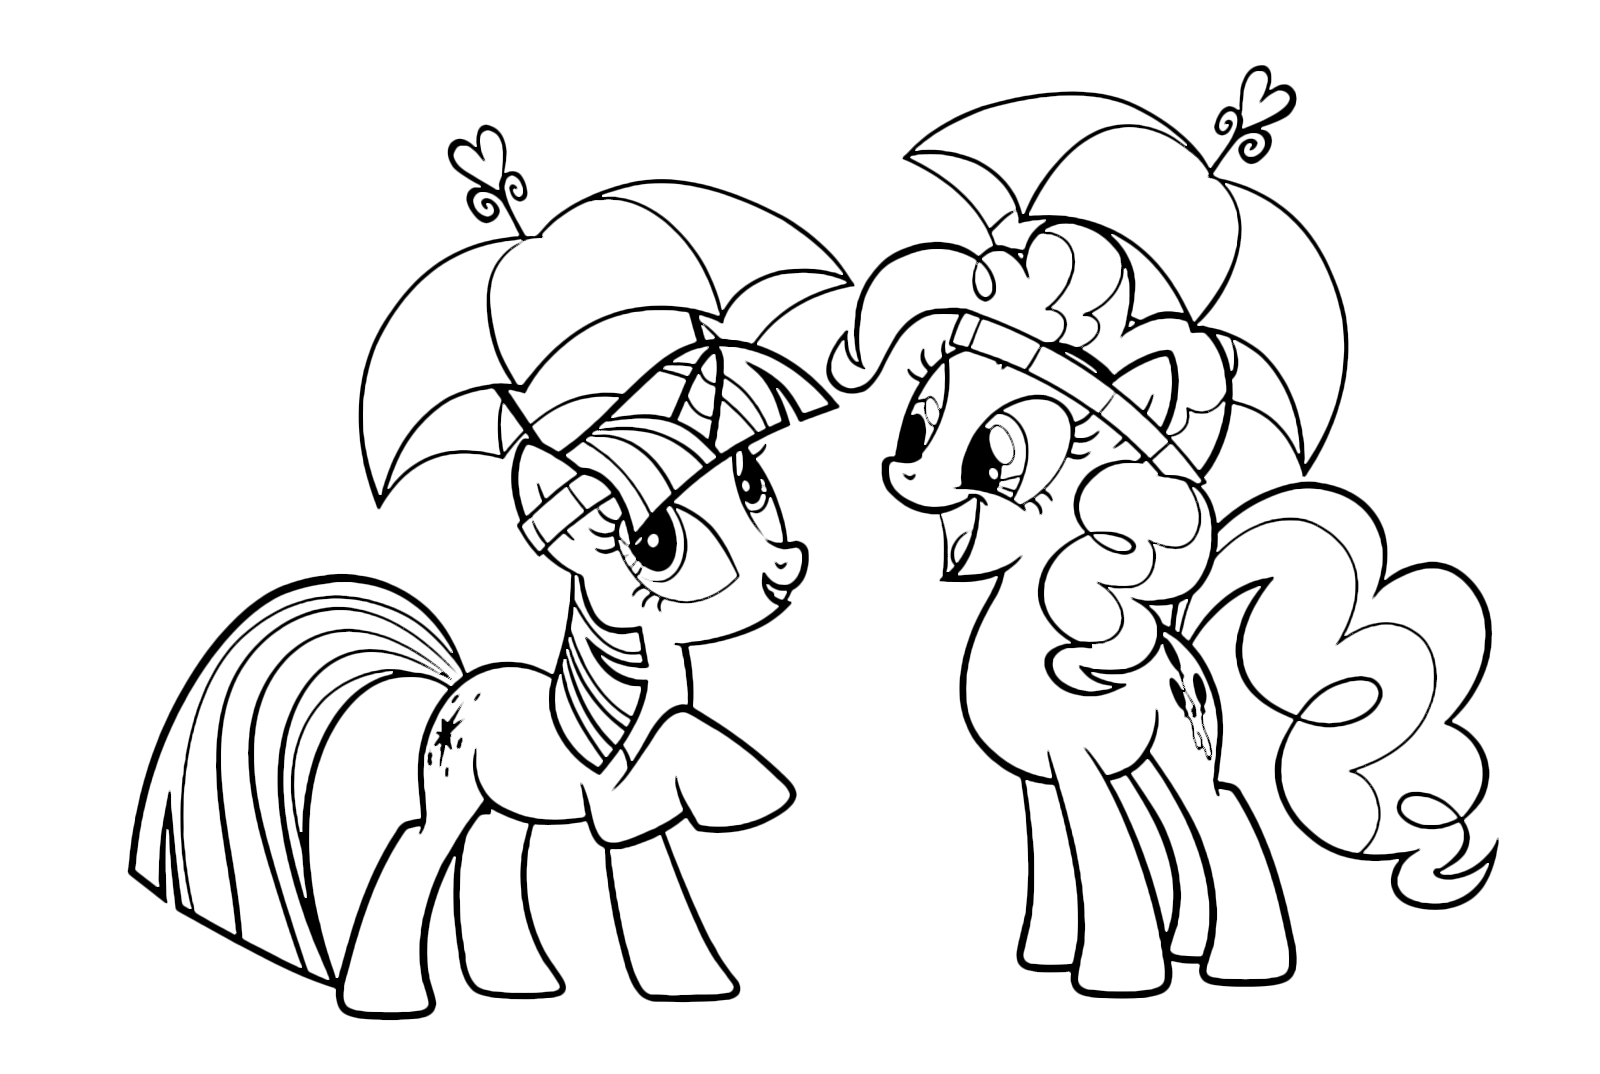 My Little Pony - Twilight Sparkle and Pinkie Pie with an open umbrella